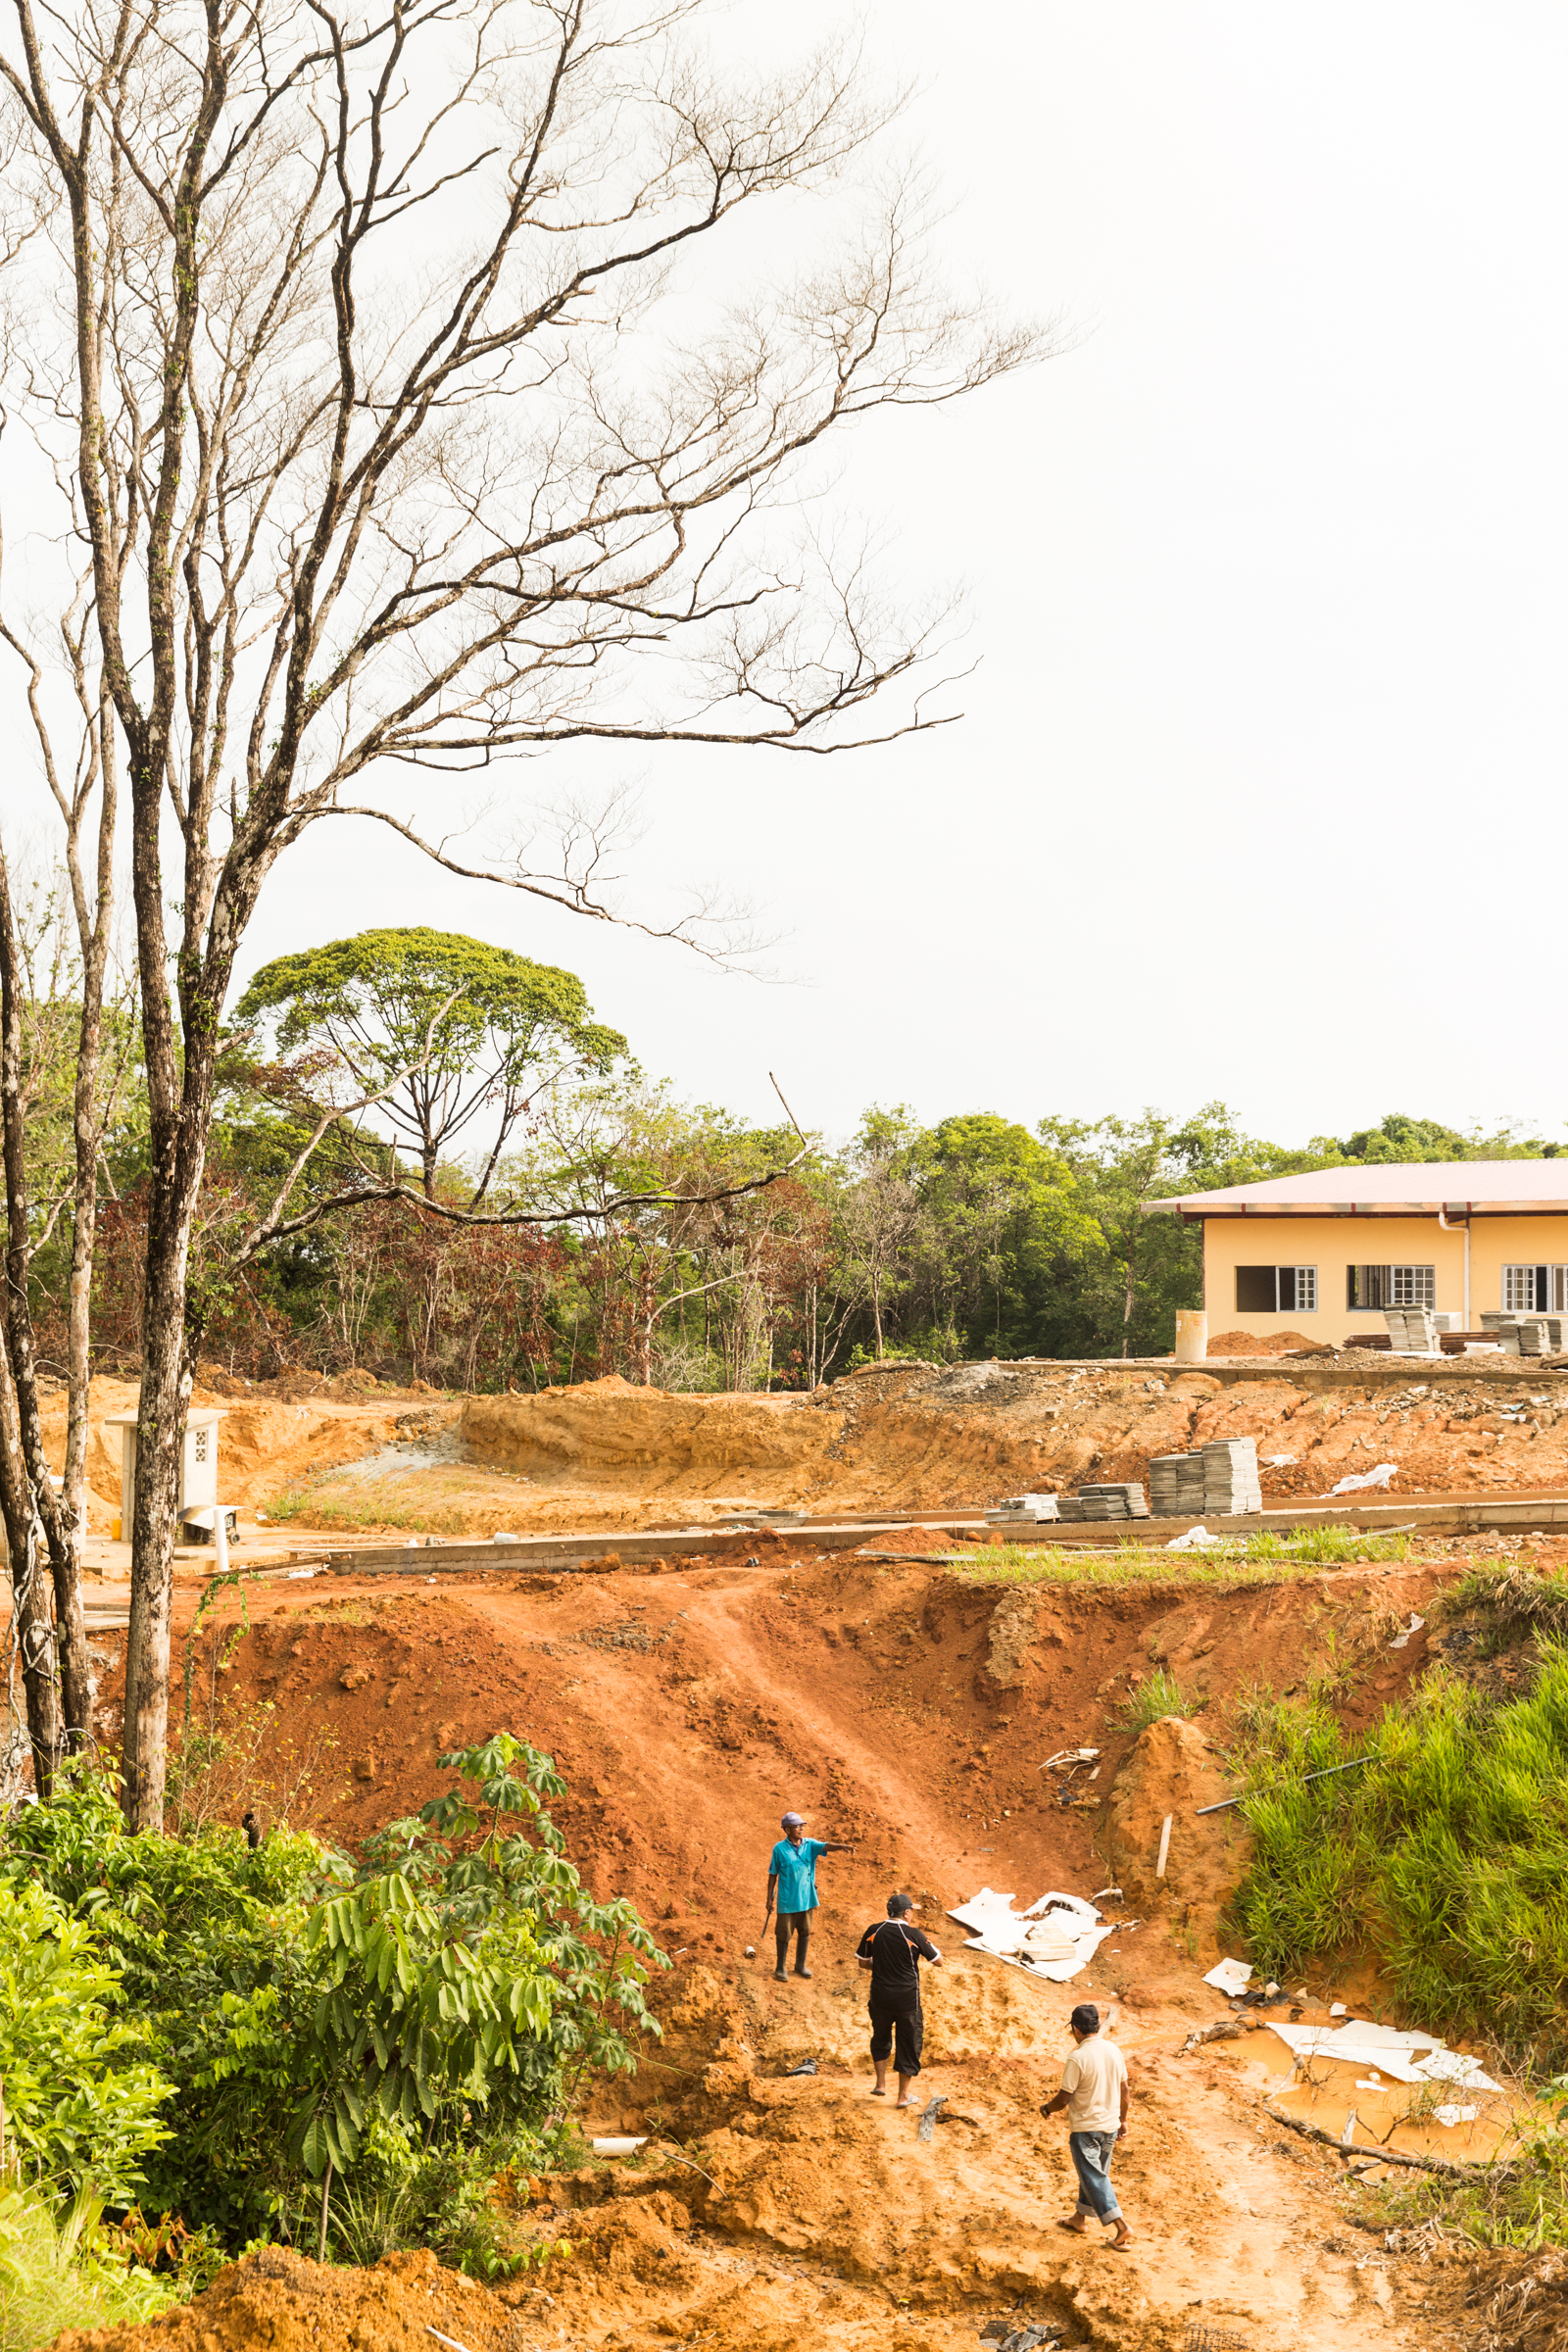 """The construction site at the """"Nueva Barria""""- the new community being built on the mainland near Gardi Subdub. The new school building is projected to open this year, with construction of the residential community to be built next. The Panamanian government began construction of a new health center, but the building has been sitting unfinished for years."""